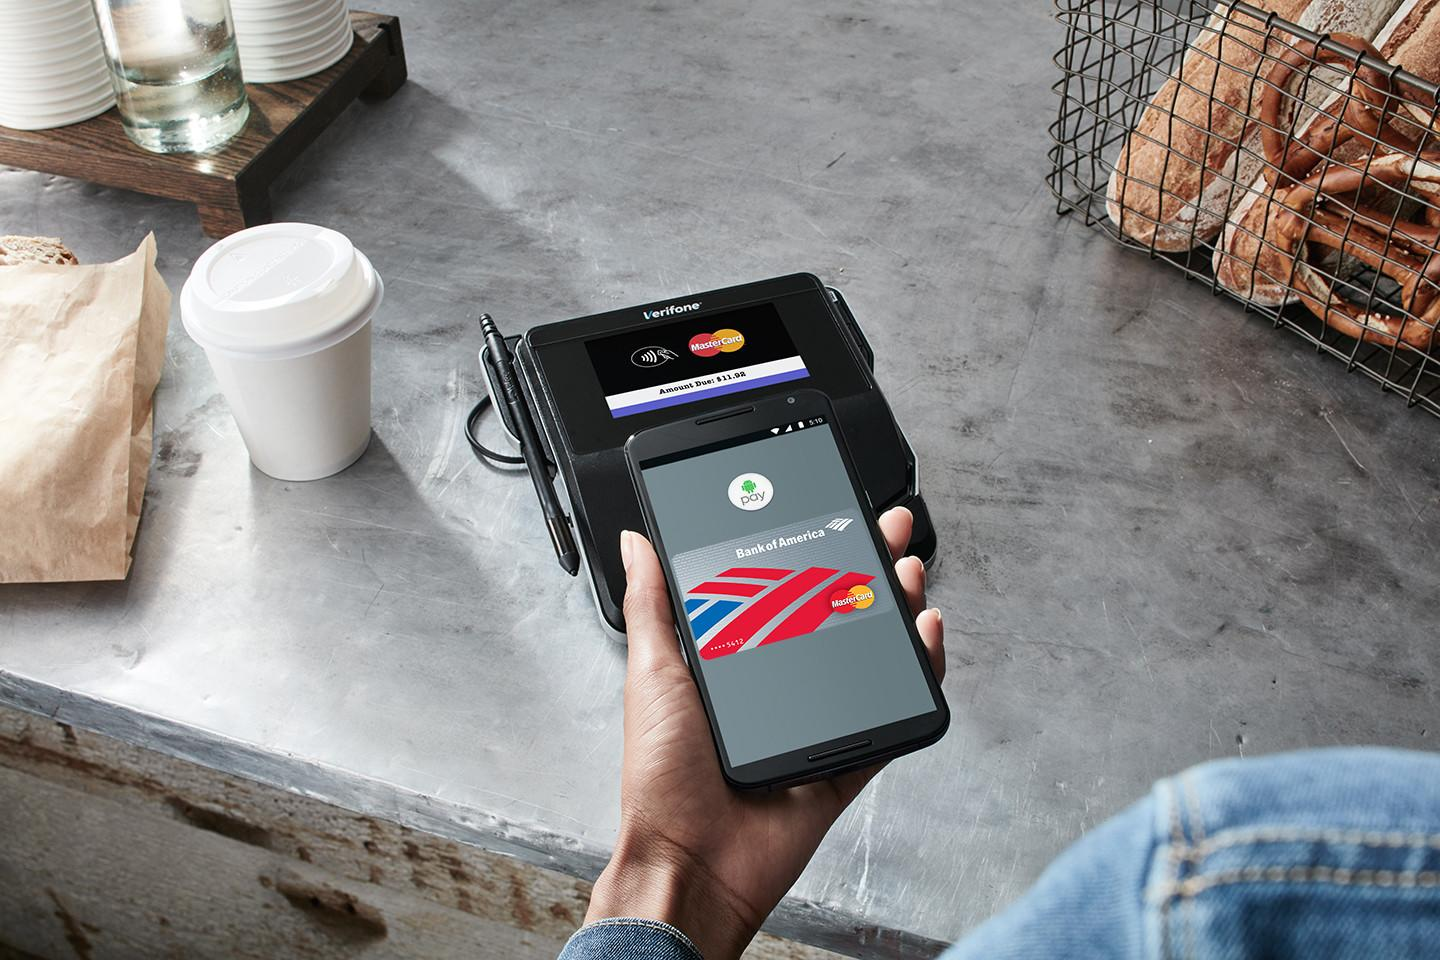 Use Android Pay for a good cause: Google donates $1 per purchase to special education